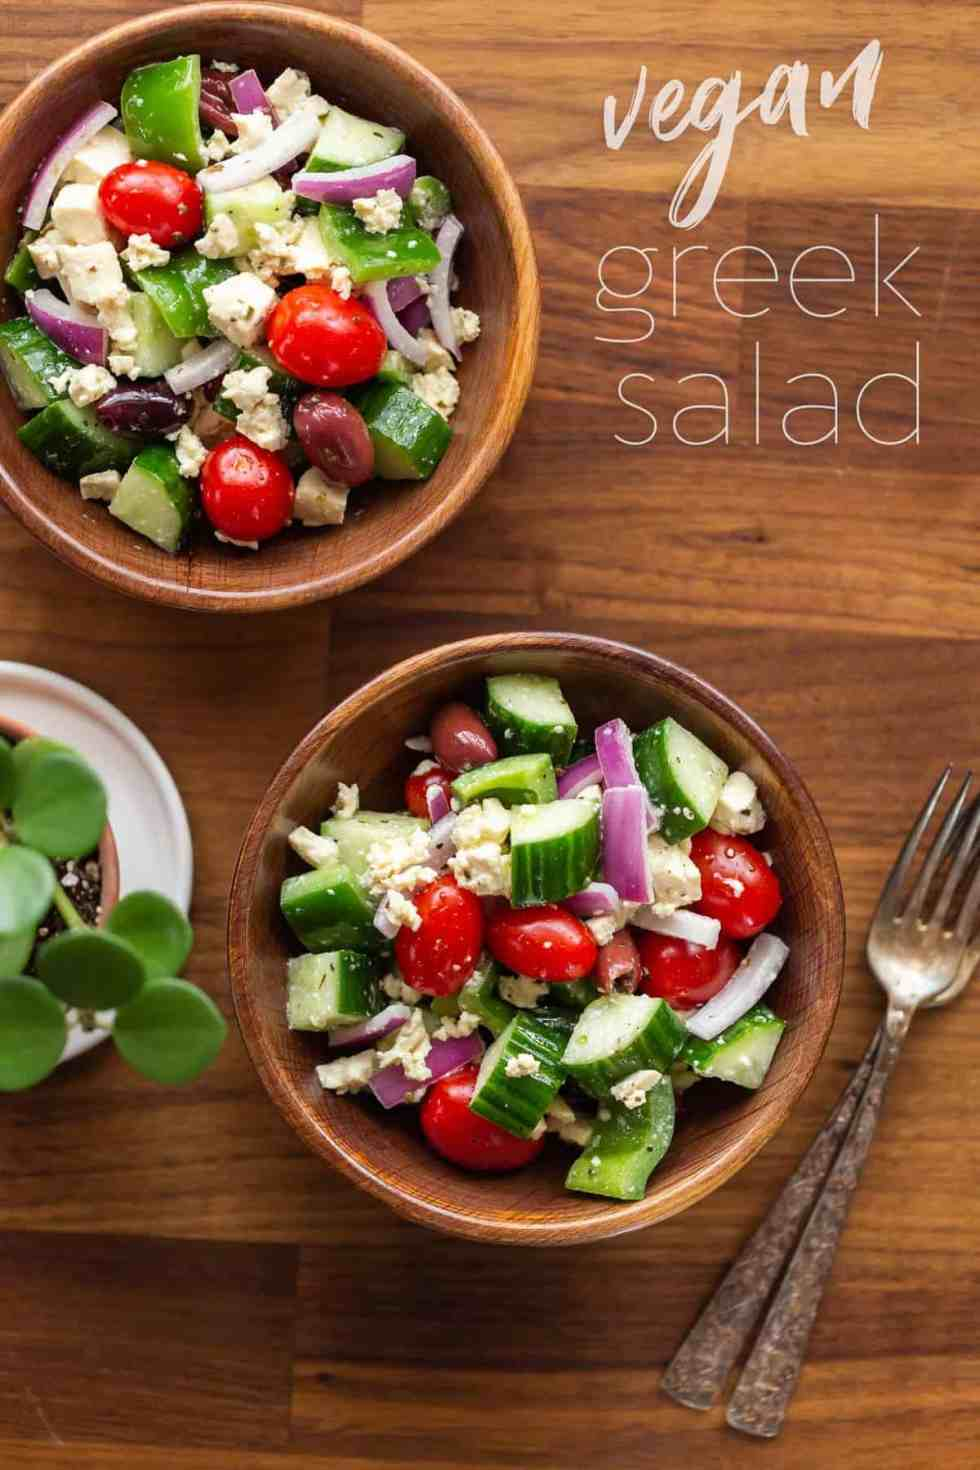 Two individual servings of vegan Greek salad served in small wood bowls on top of a walnut counter top.